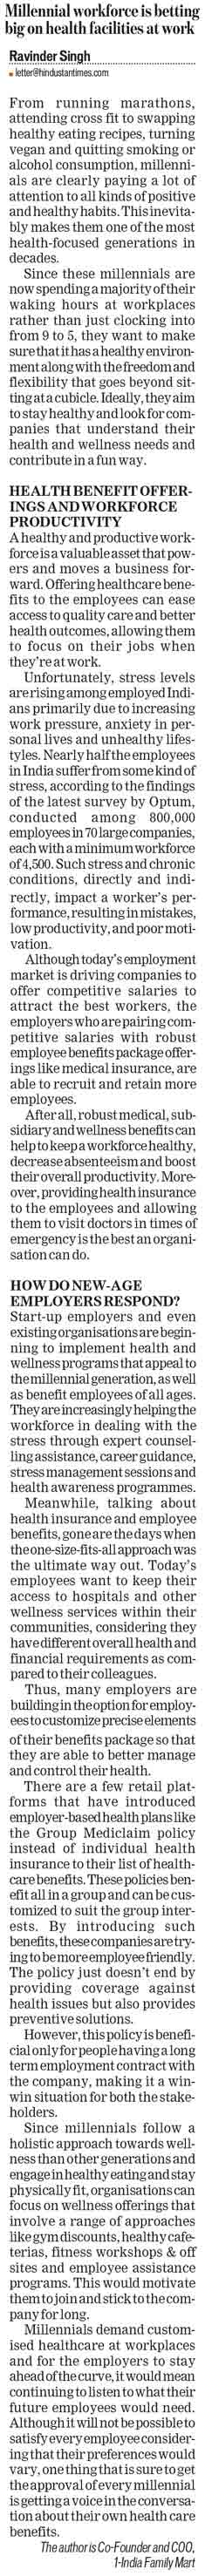 Millennial workforce is betting big on health facilities at work